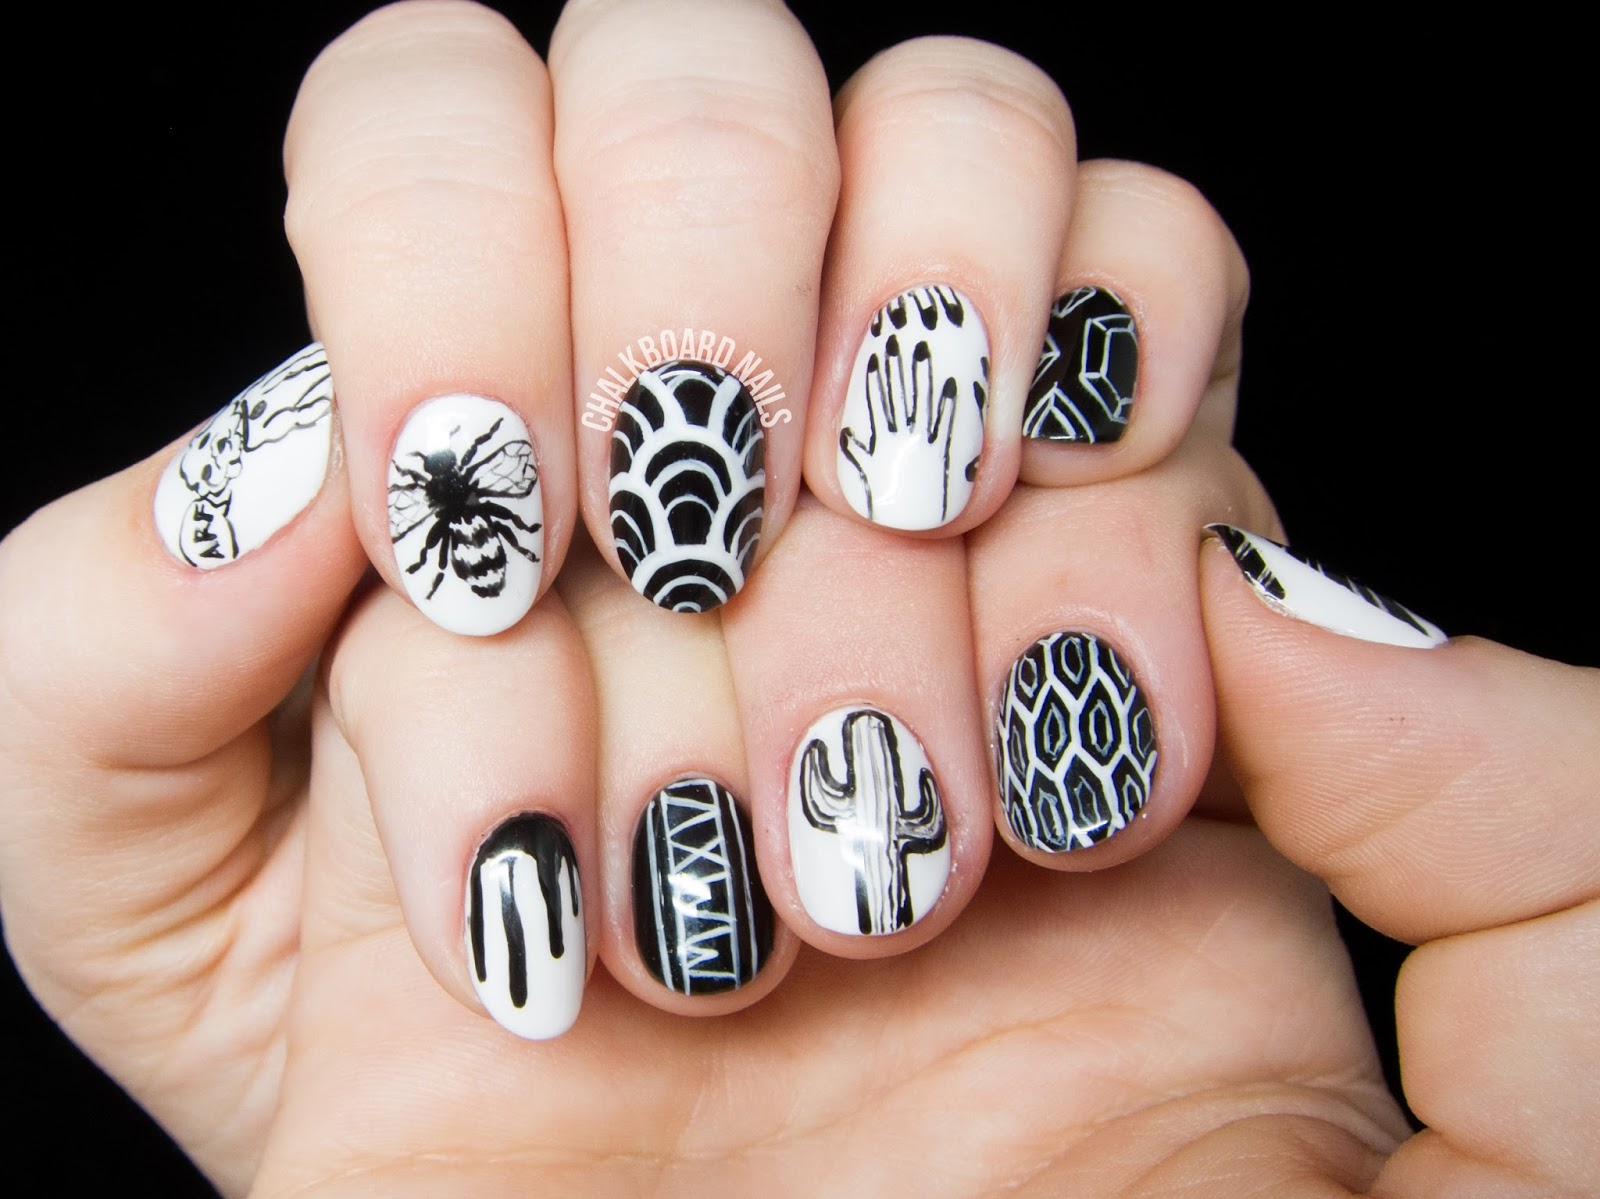 Personalized Black and White Freehand Nail Art | Chalkboard Nails ...